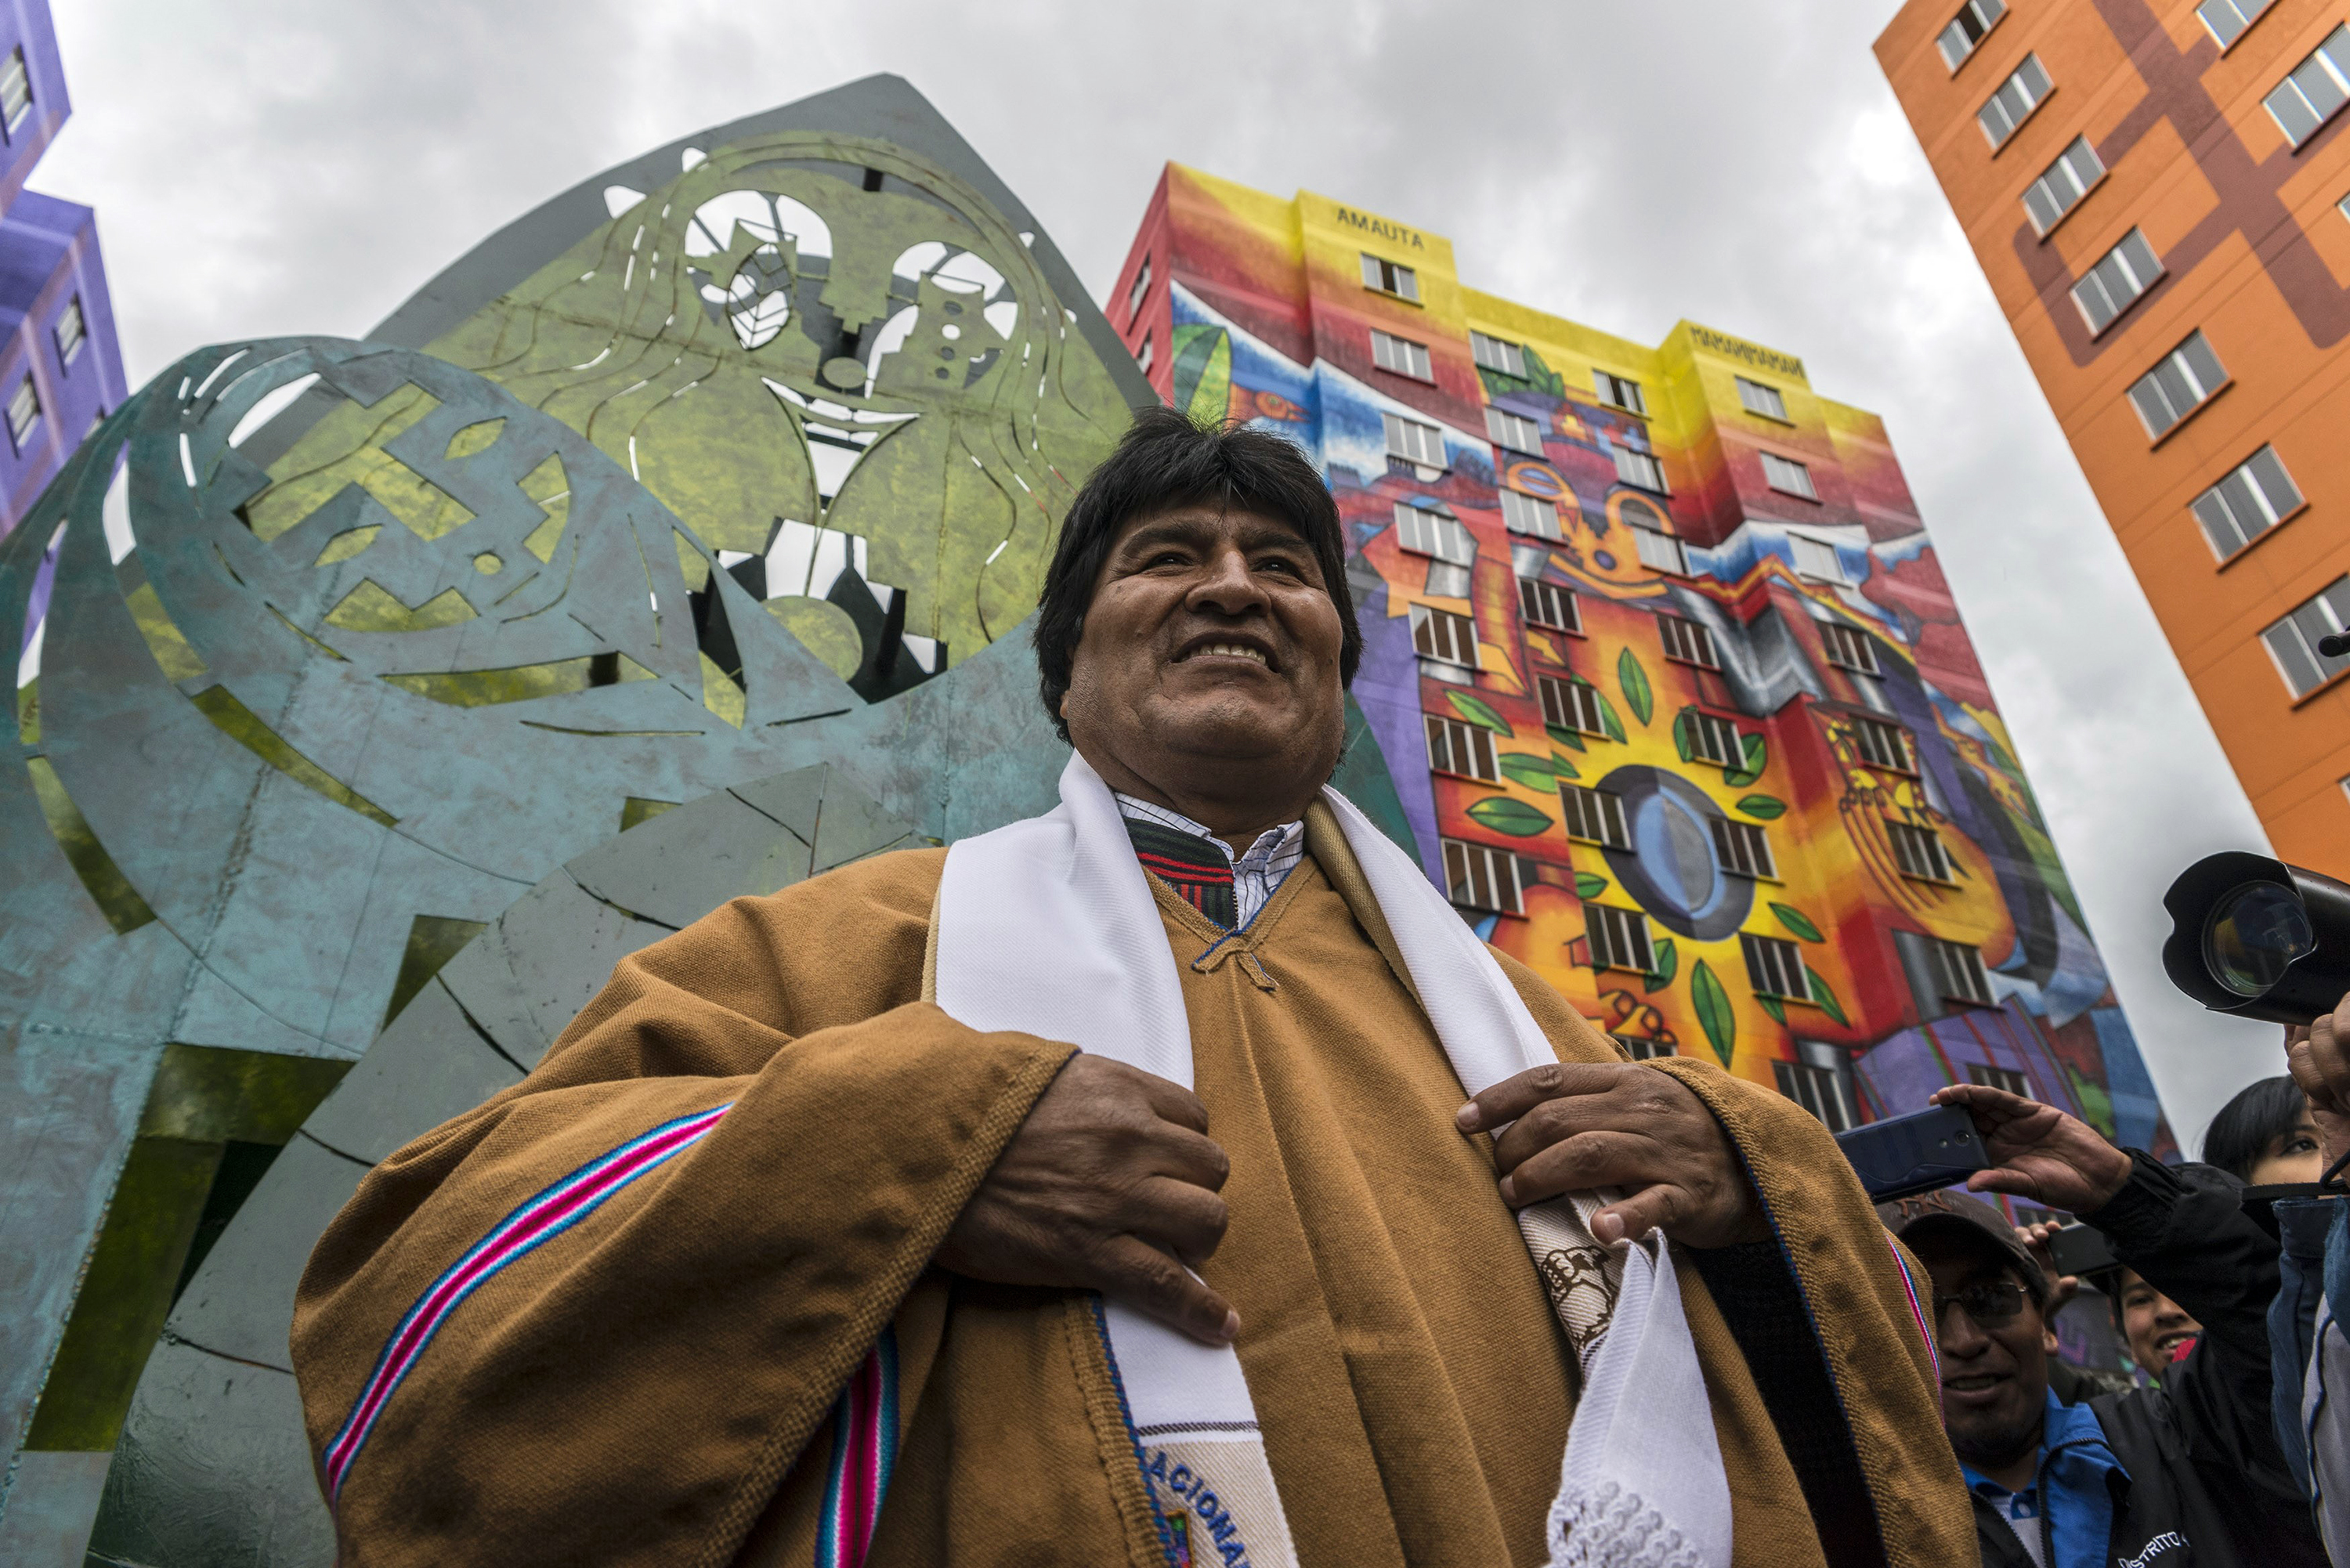 How Evo Morales Made Bolivia A Better Place ... Before He Fled The Country